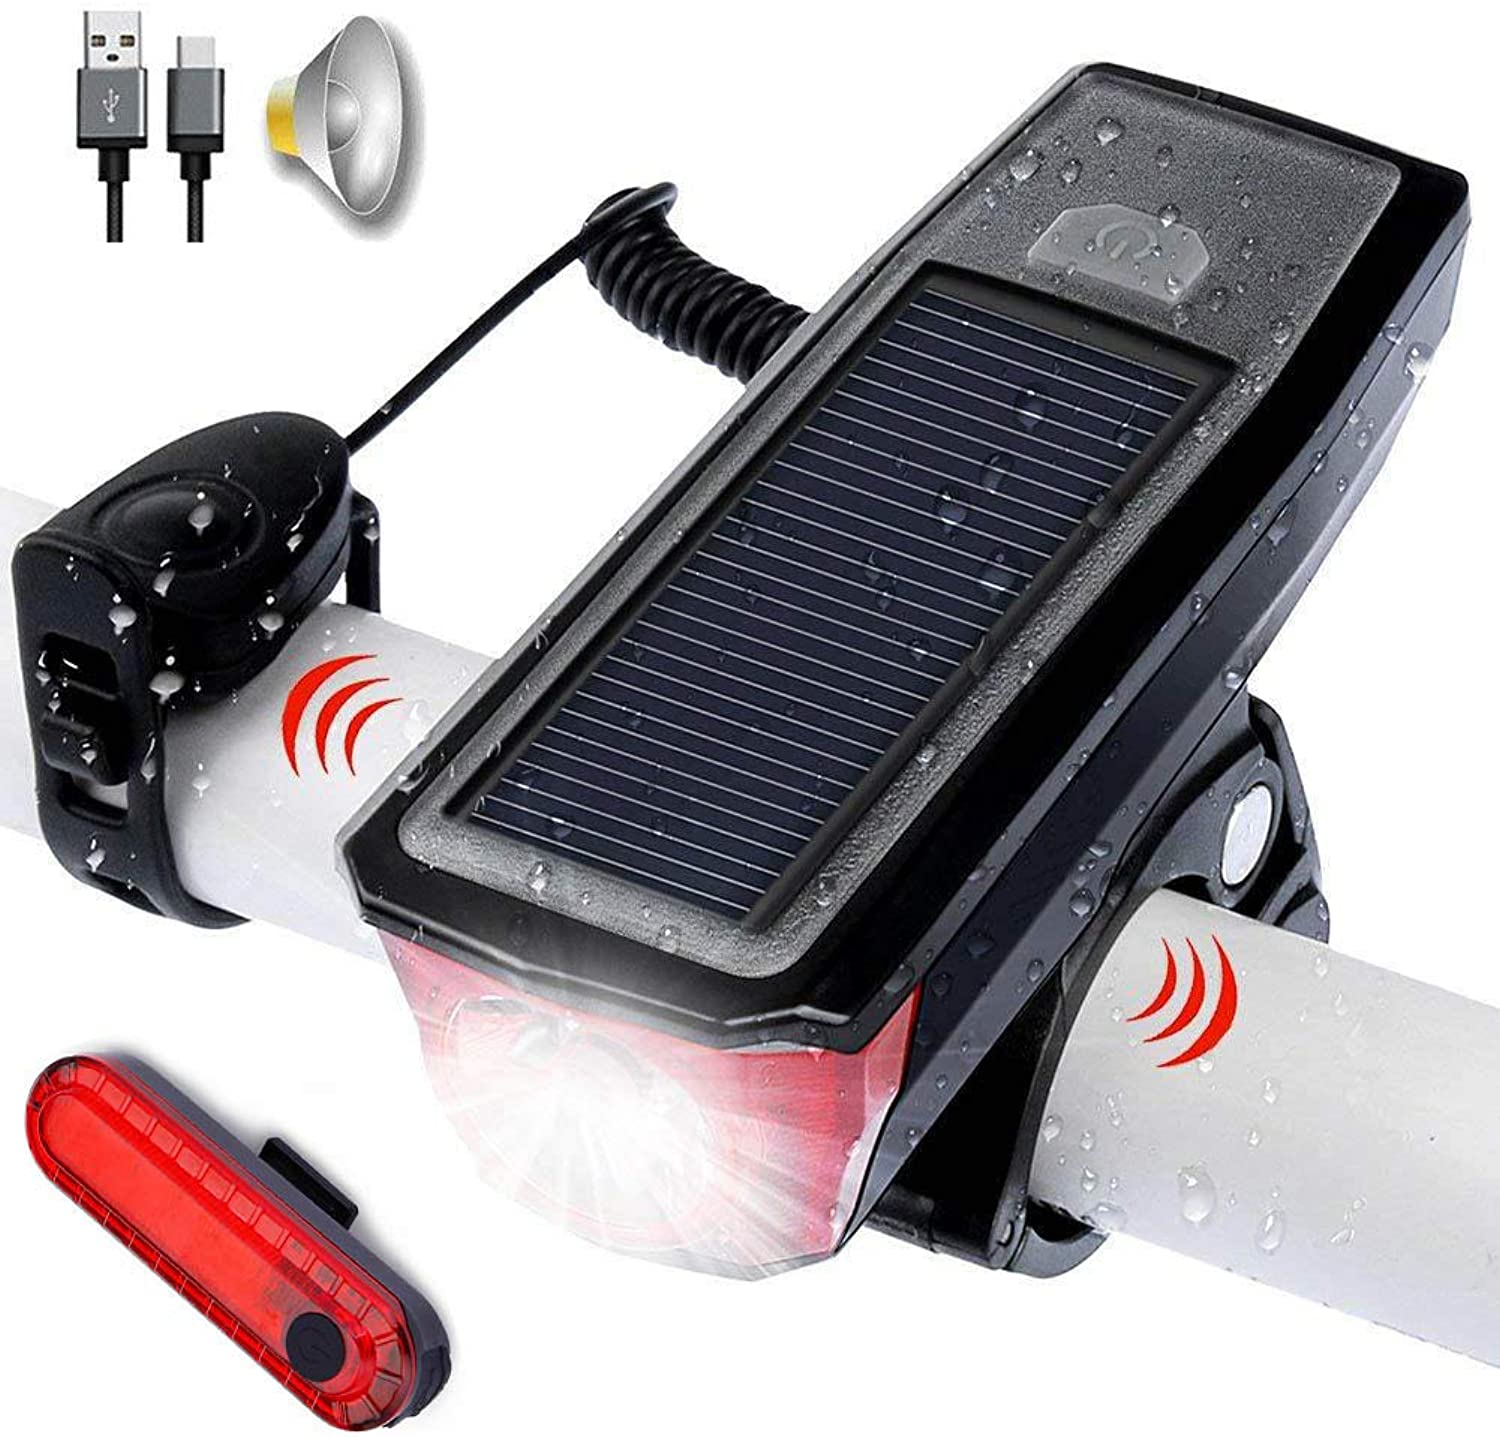 USB Rechargeable Solar Bicycle Light Mountain Bike Front Light with Speaker USB Rechargeable Taillight Set